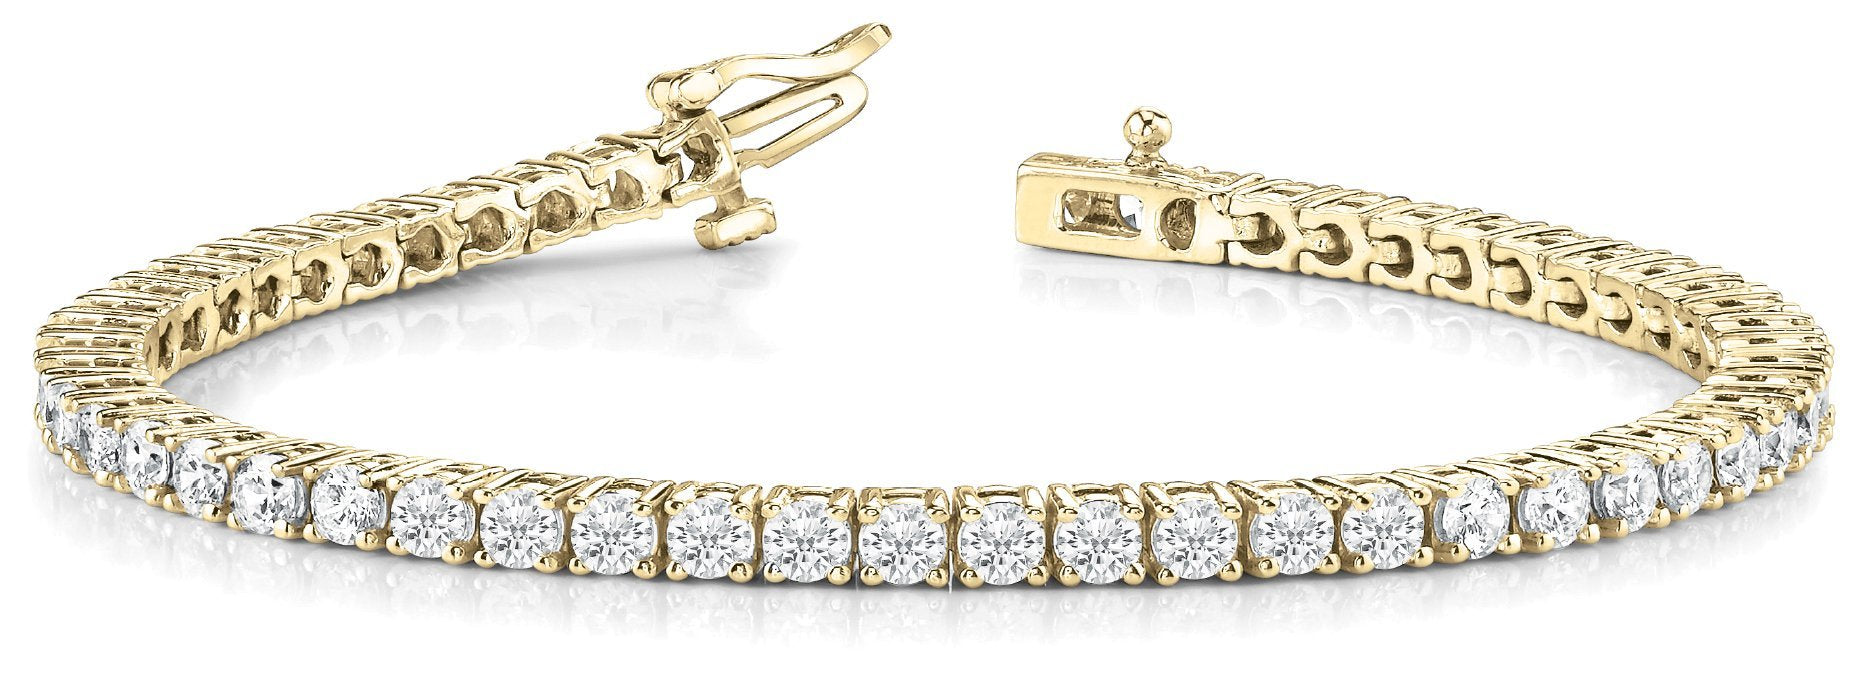 Line Diamond Bracelet 2.91ct tw Ladies - 14kt Yellow Gold